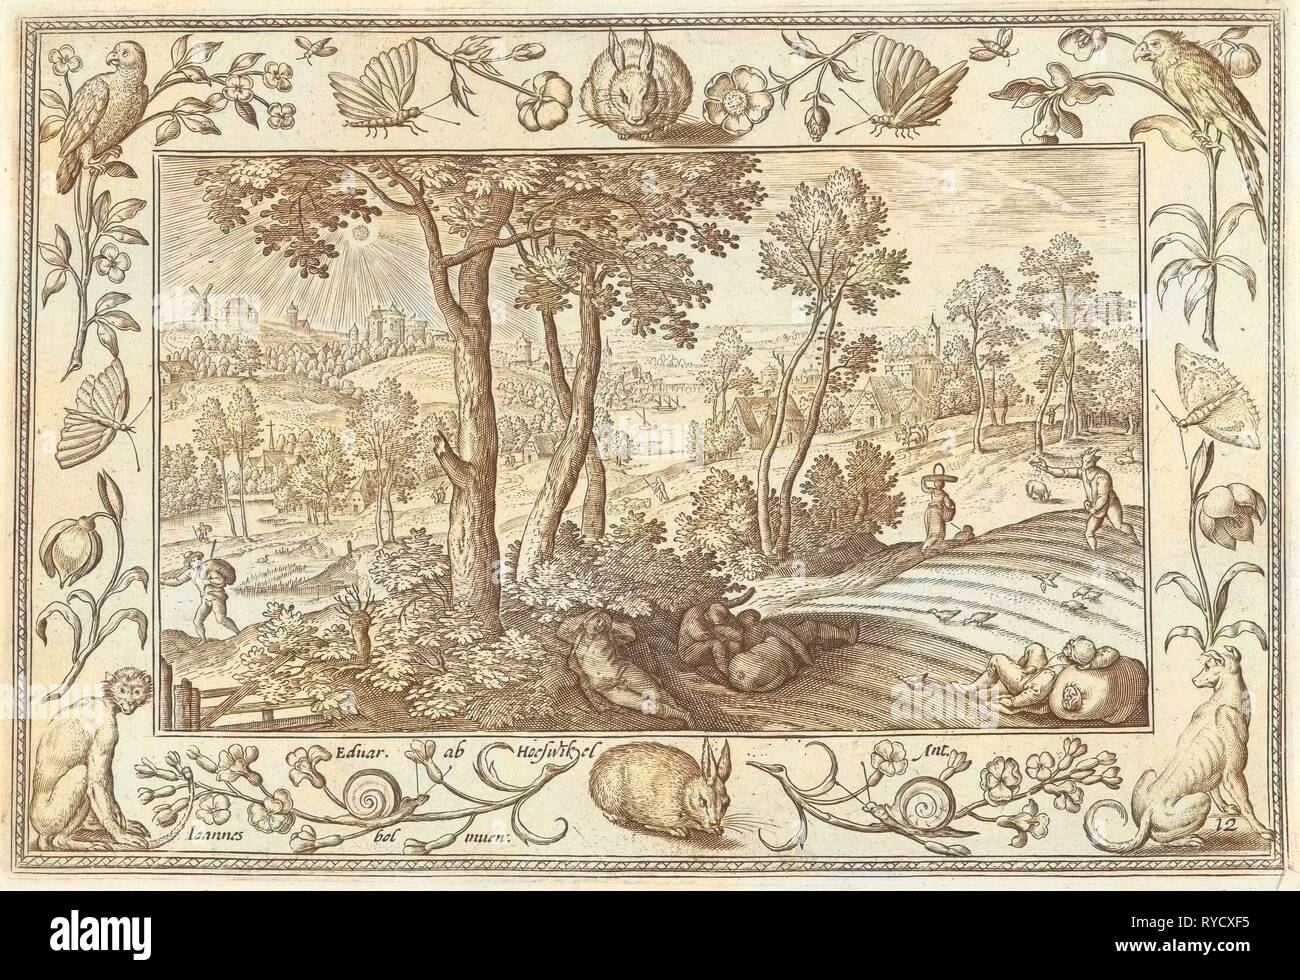 Weeds among the wheat, Adriaen Collaert, Eduwart Hoes Winckel, 1582-1586 - Stock Image